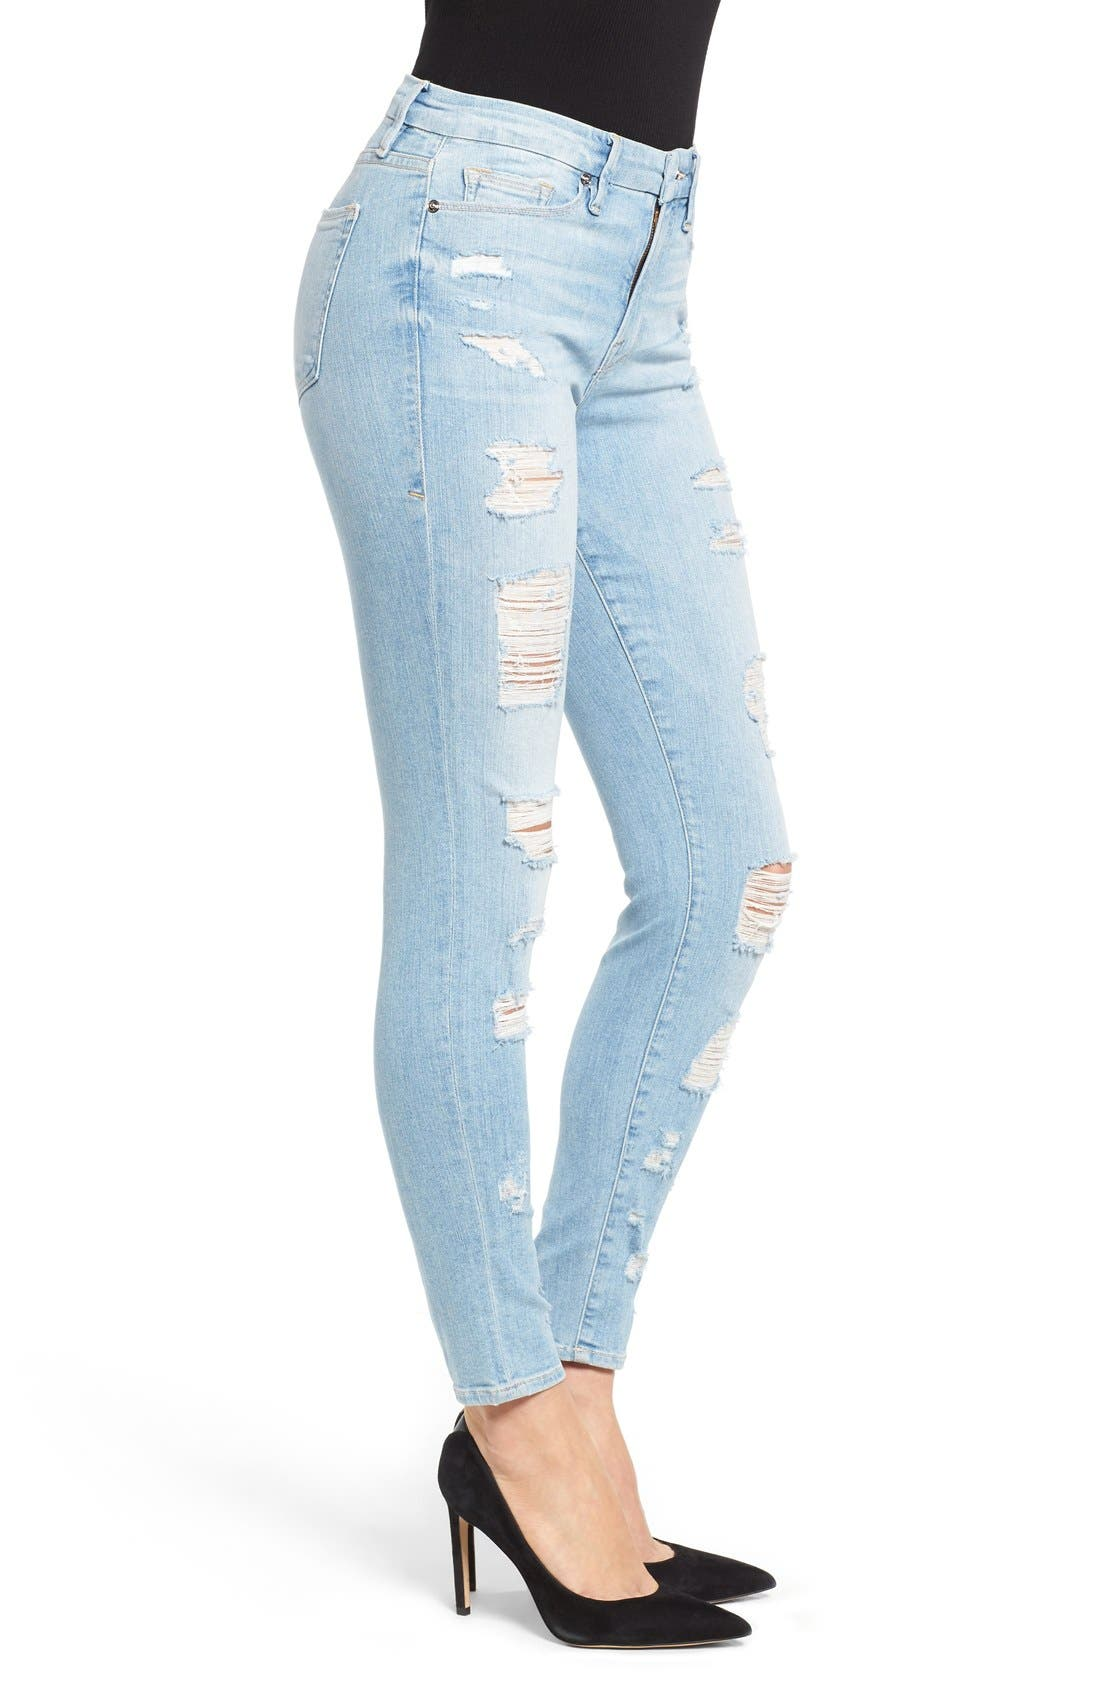 Alternate Image 3  - Good American Good Legs High Rise Ripped Skinny Jeans (Blue 008)